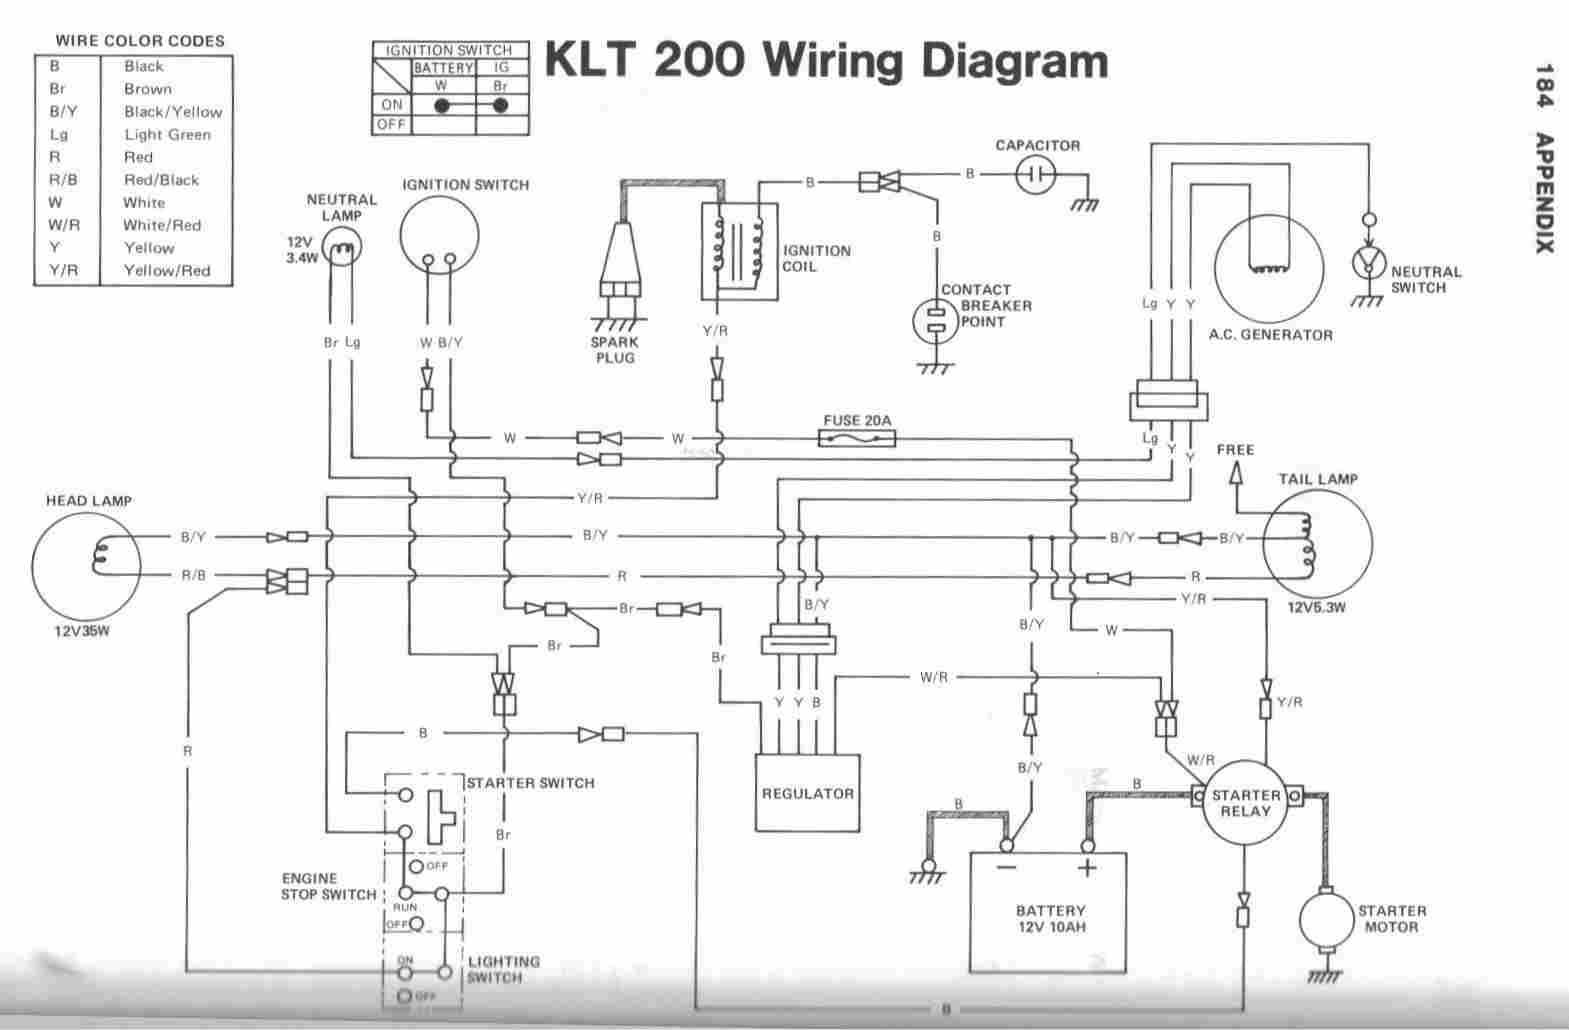 How To Read Home Wiring Diagrams Pollak 12 705 Diagram 2 Residential Electrical Pdf Easy Routing